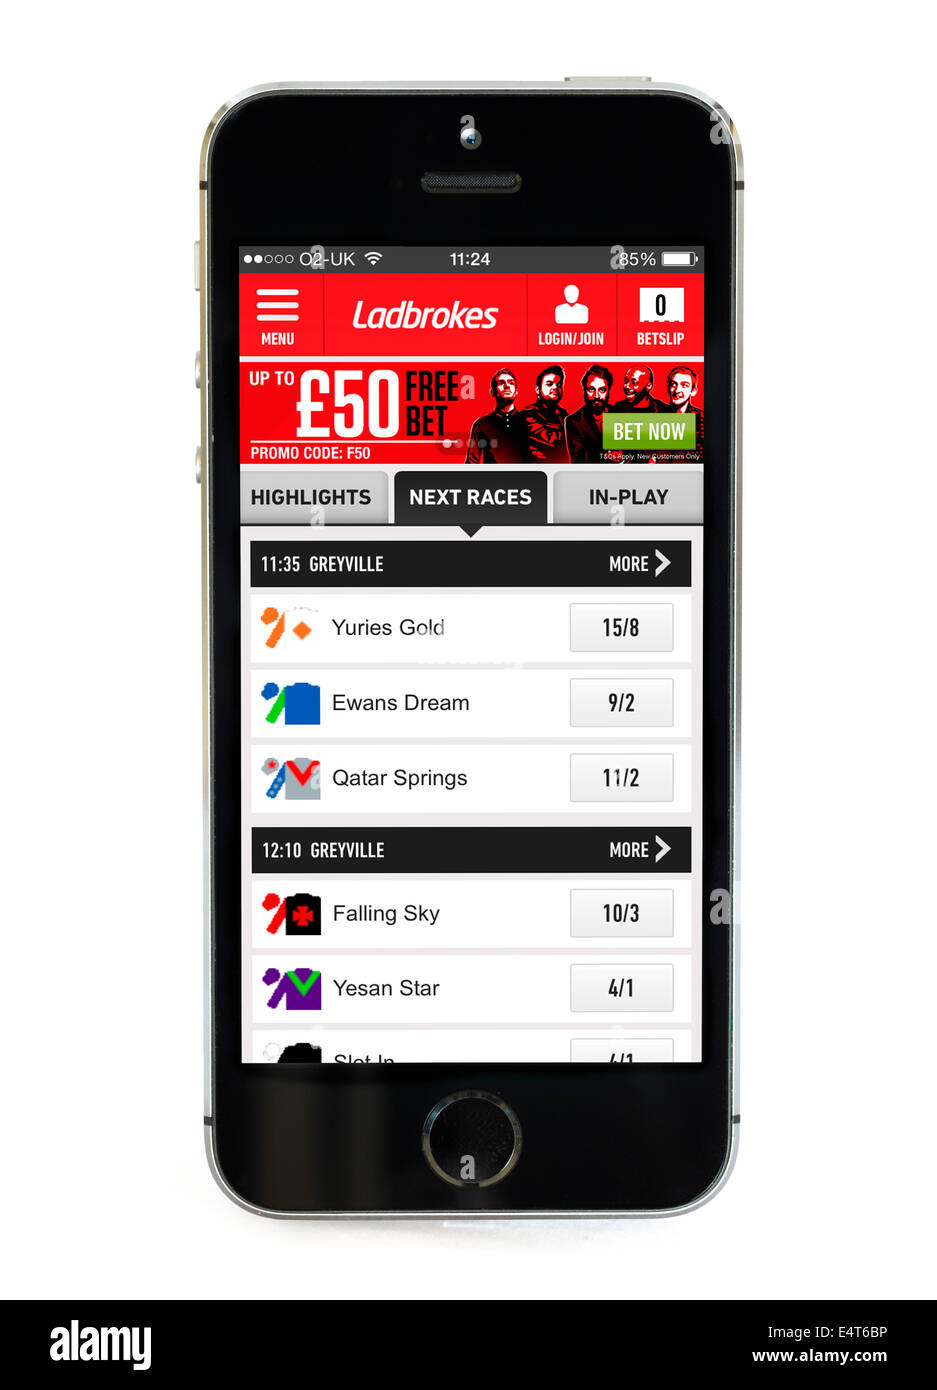 Ladbrokes betting app on an Apple iPhone 5S - Stock Image